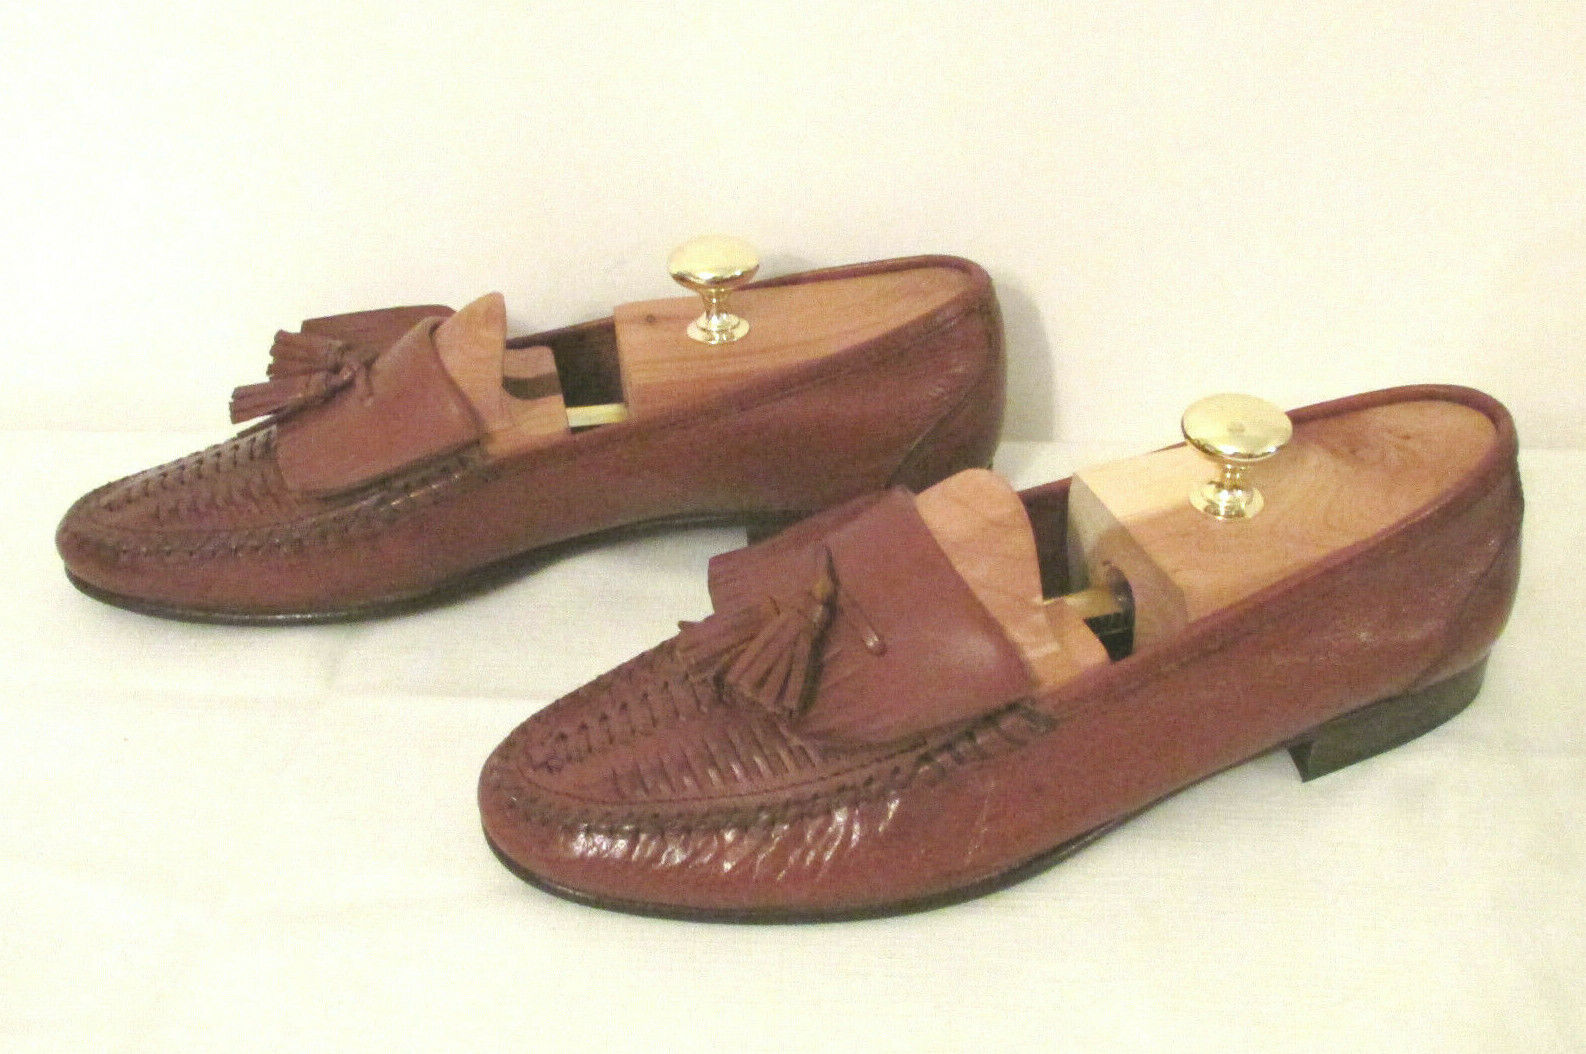 Bruno Magli PENN Brown Leather Loafers 9 M Tassels Fringe shoes Hand Made